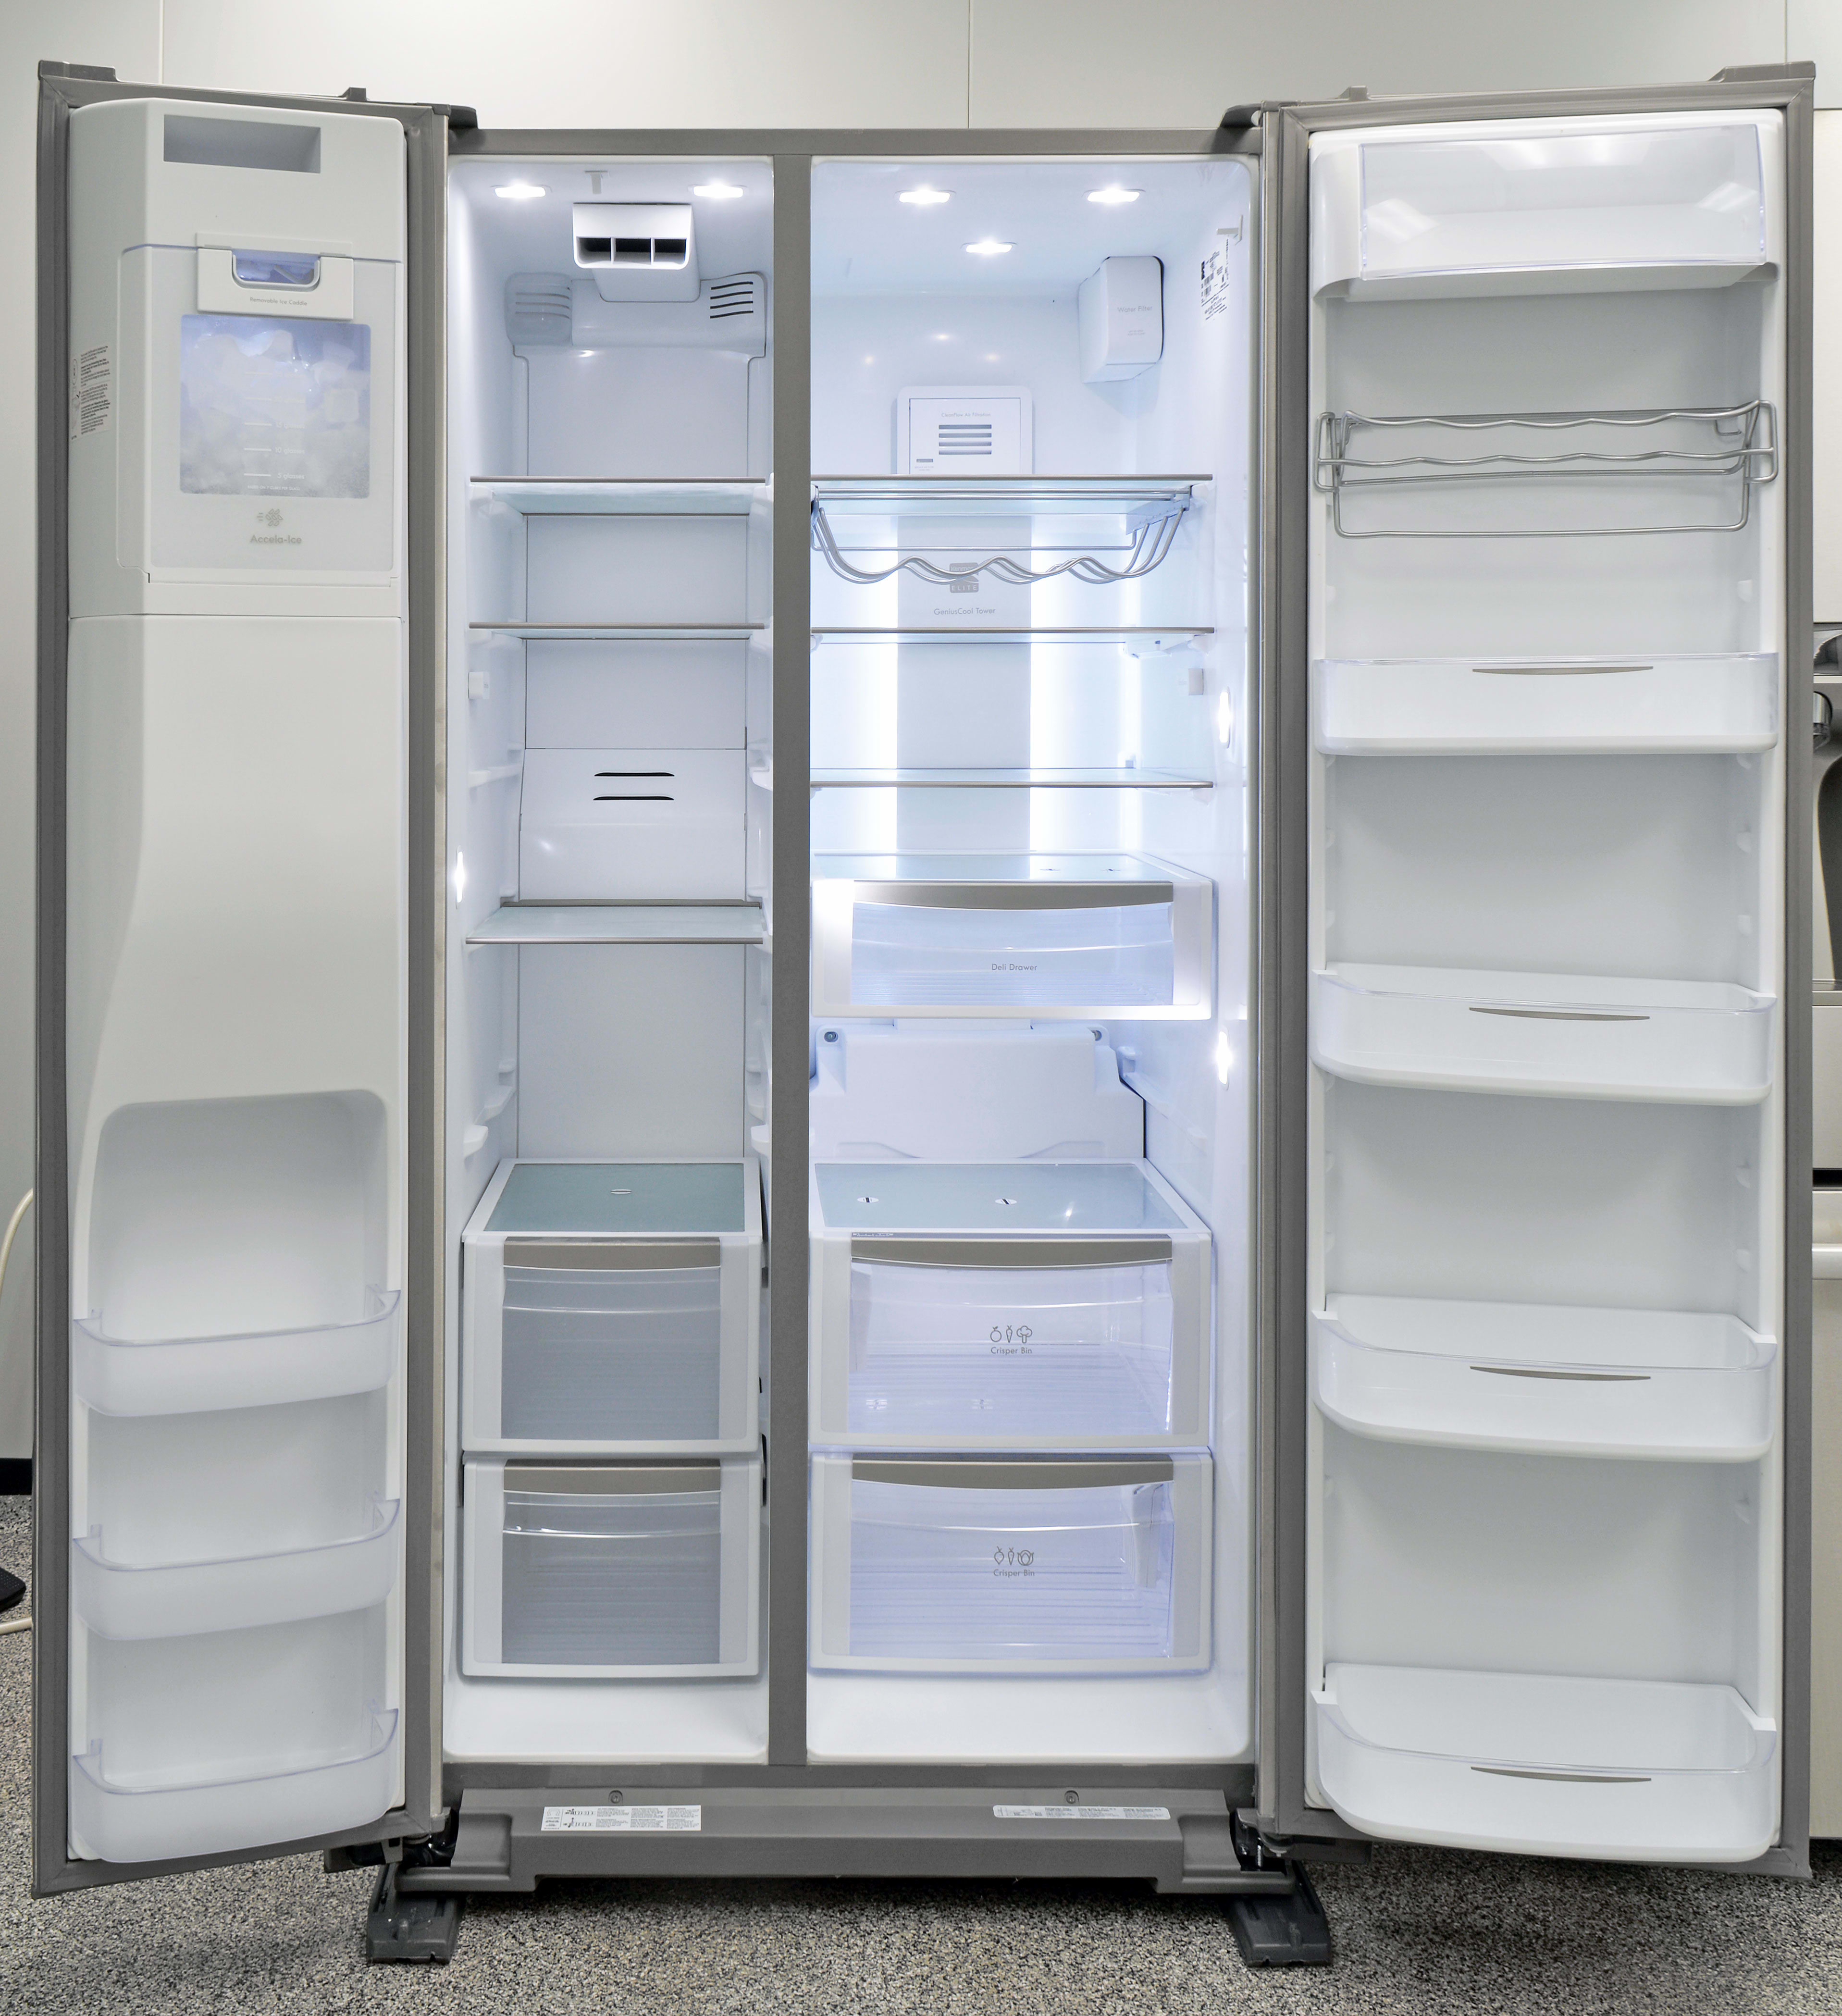 The Kenmore Elite 51773 has lots of lights, lots of shelves, and lots of space.